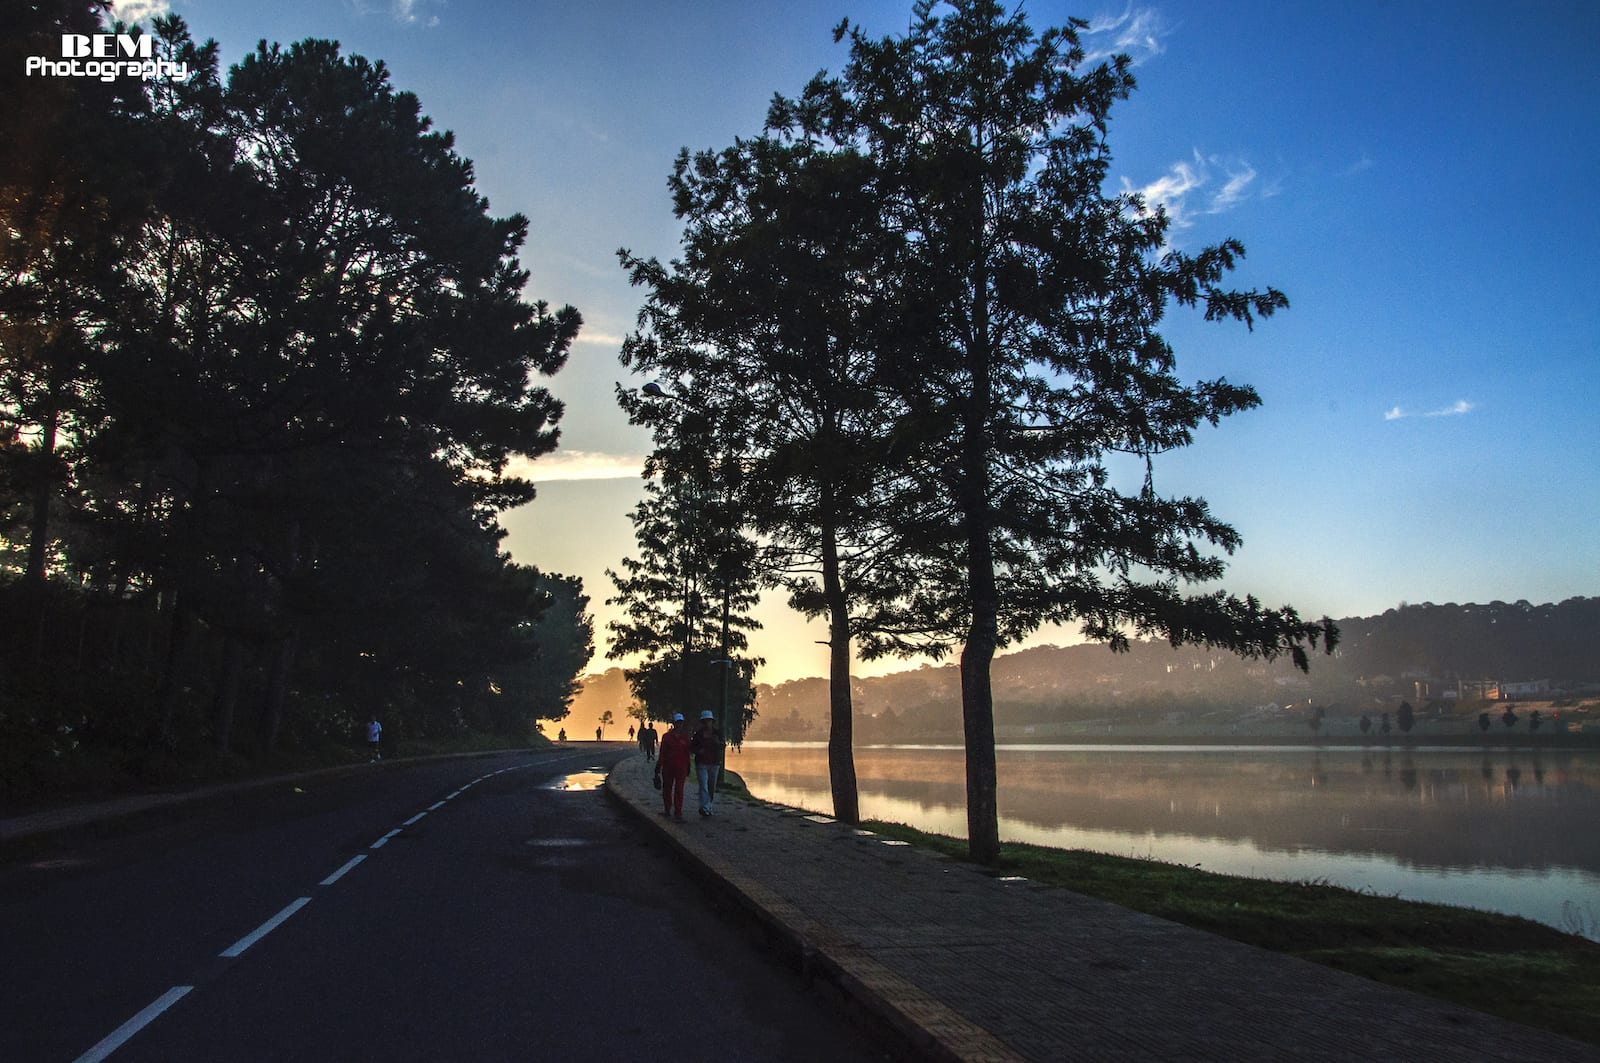 The morning at Ho Xuan Huong Lake, Da Lat